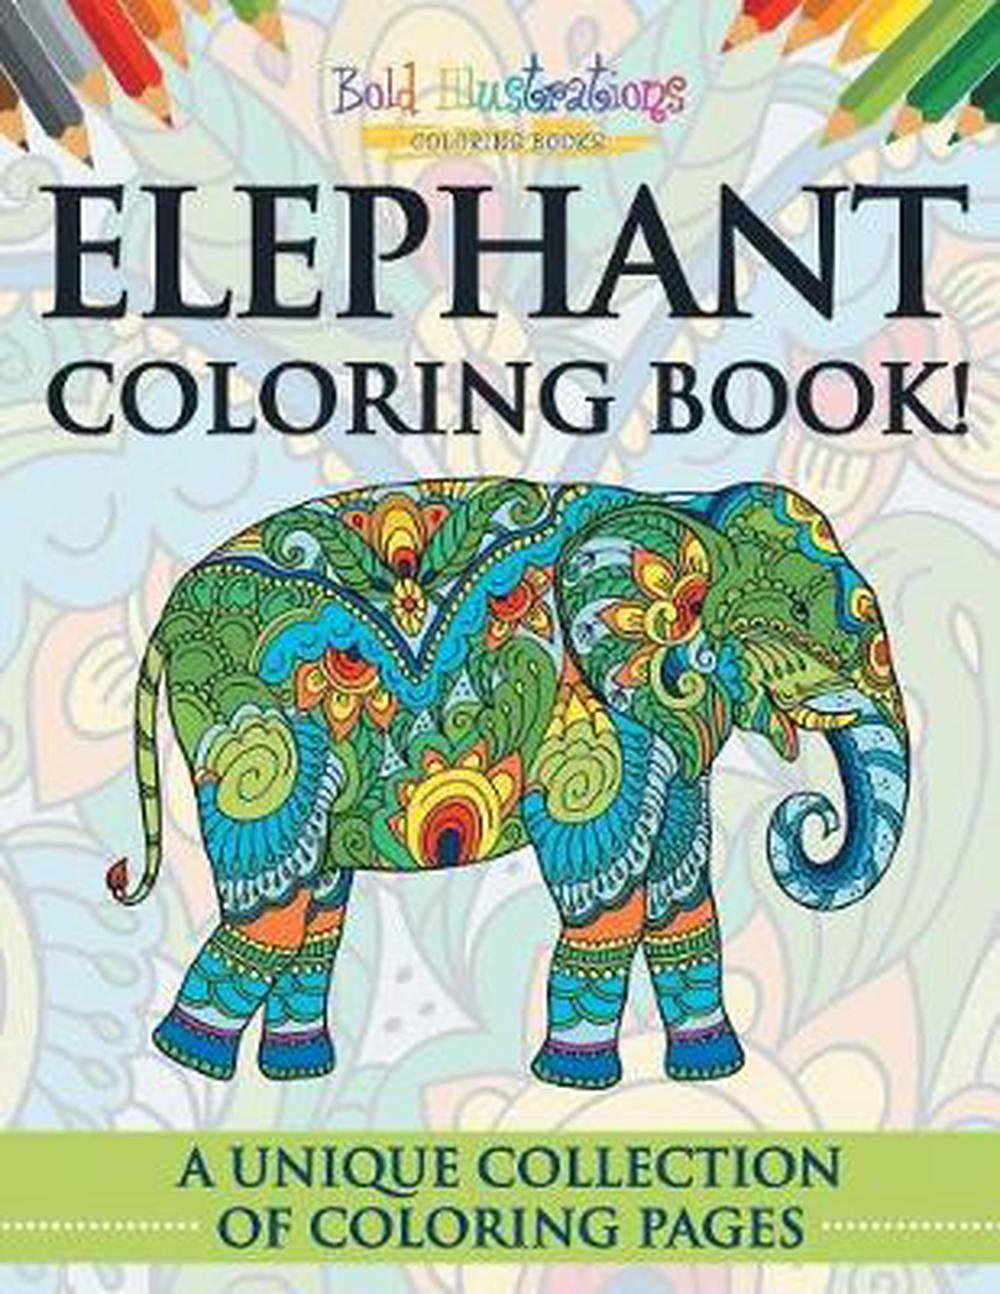 - Elephant Coloring Book! A Unique Collection Of Coloring Pages By